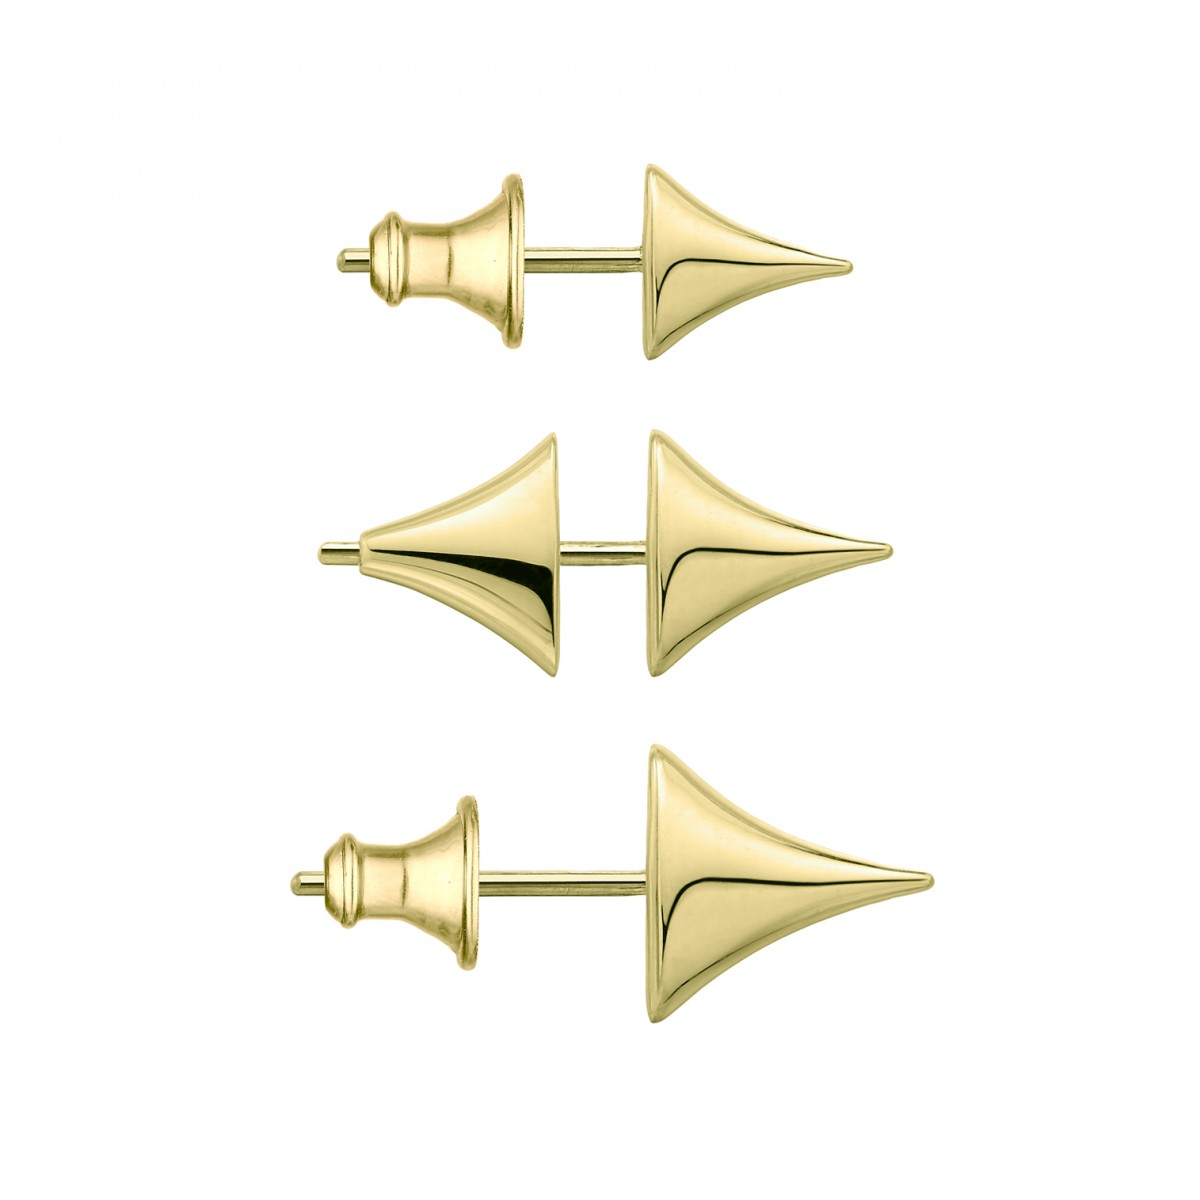 Shaun Leane Rose Thorn Collection - Rose Thorn Yellow Gold Stud Earrings